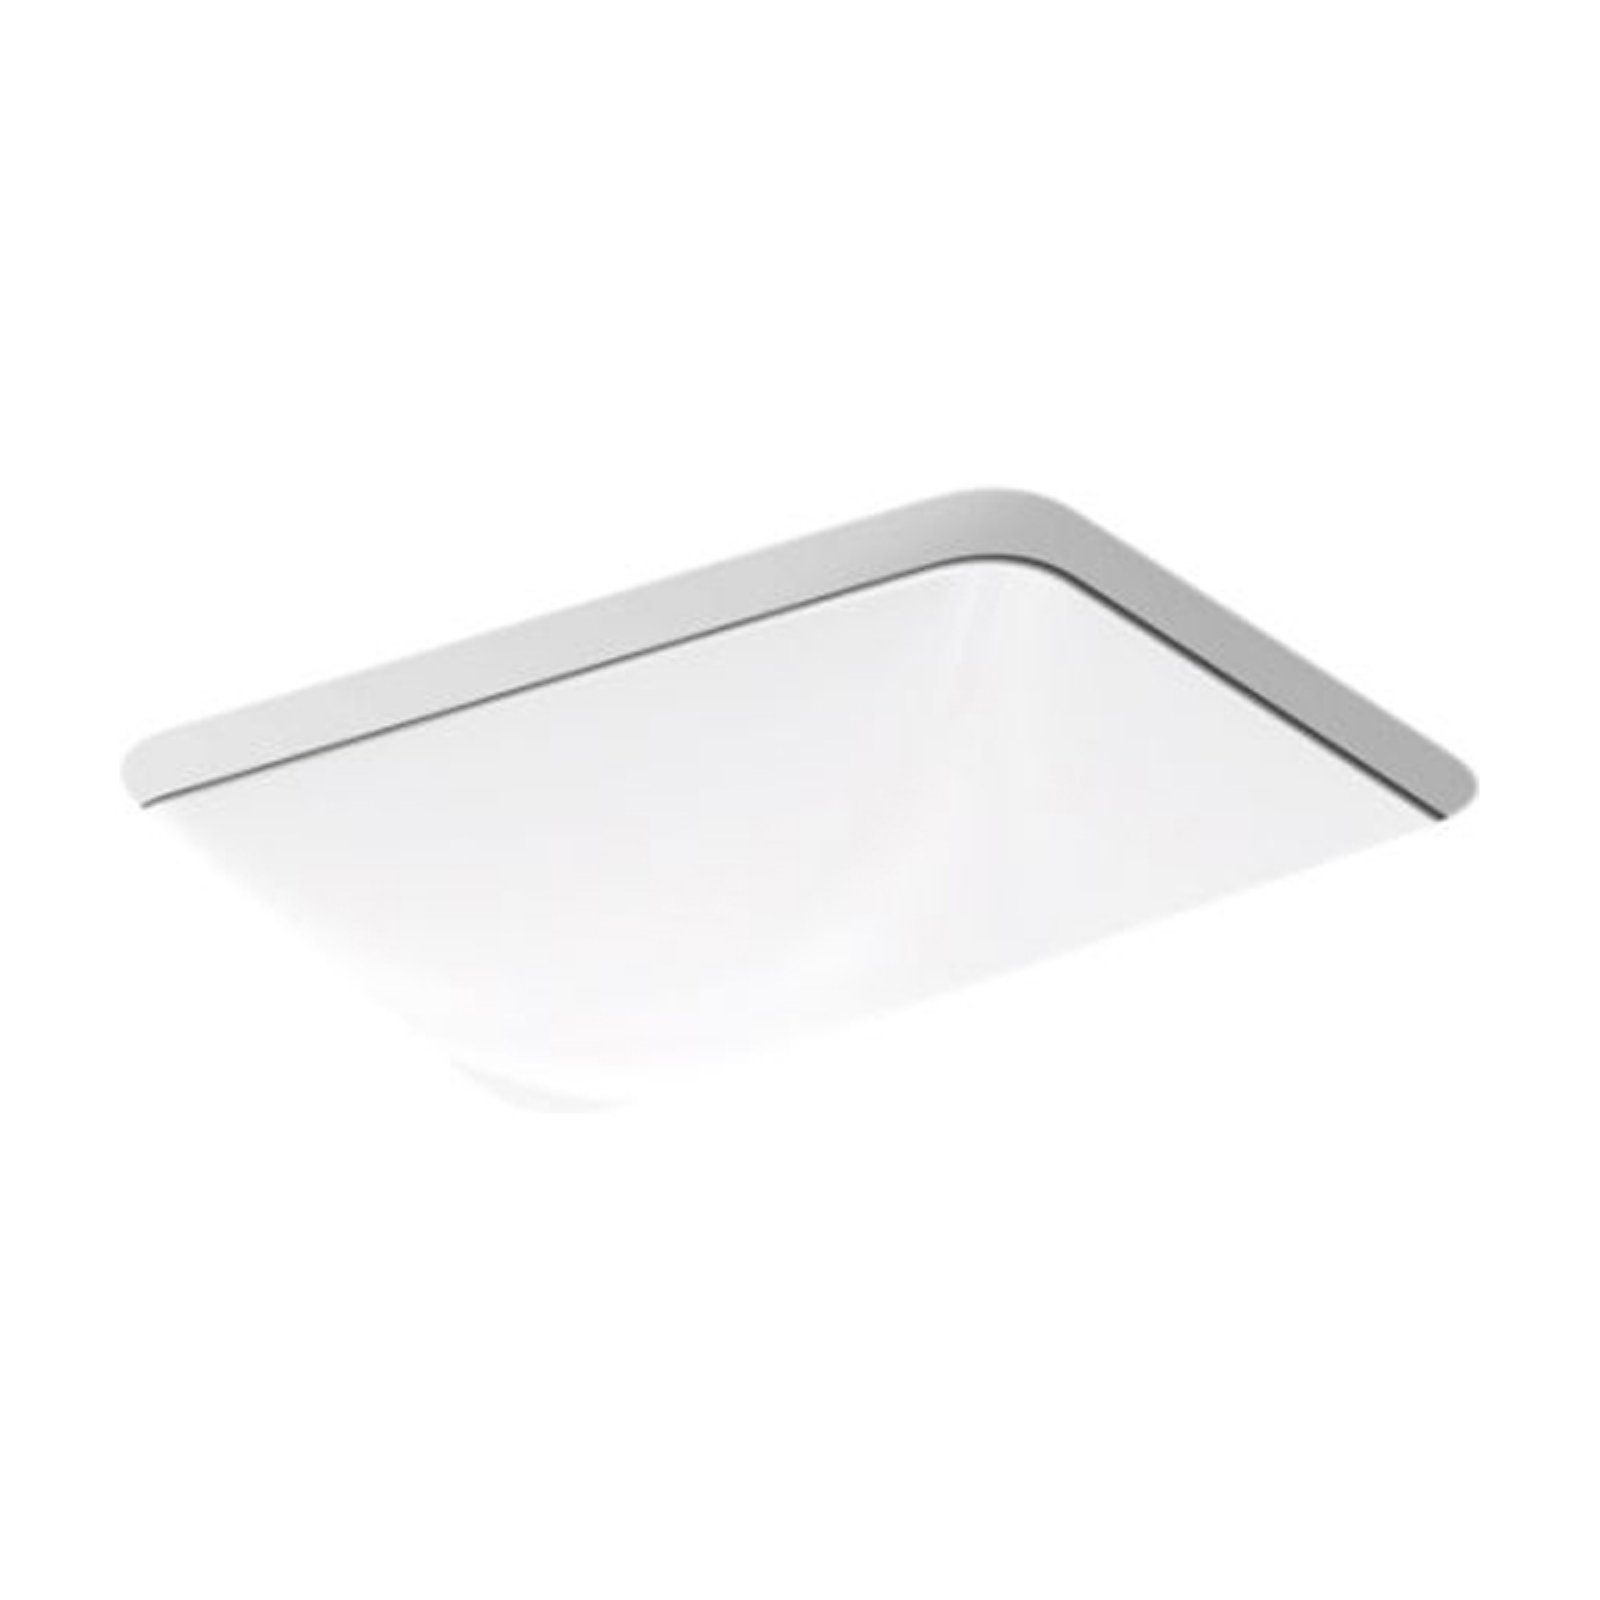 Kohler Caxton K20000 Rectangle Undermount Bathroom Sink White